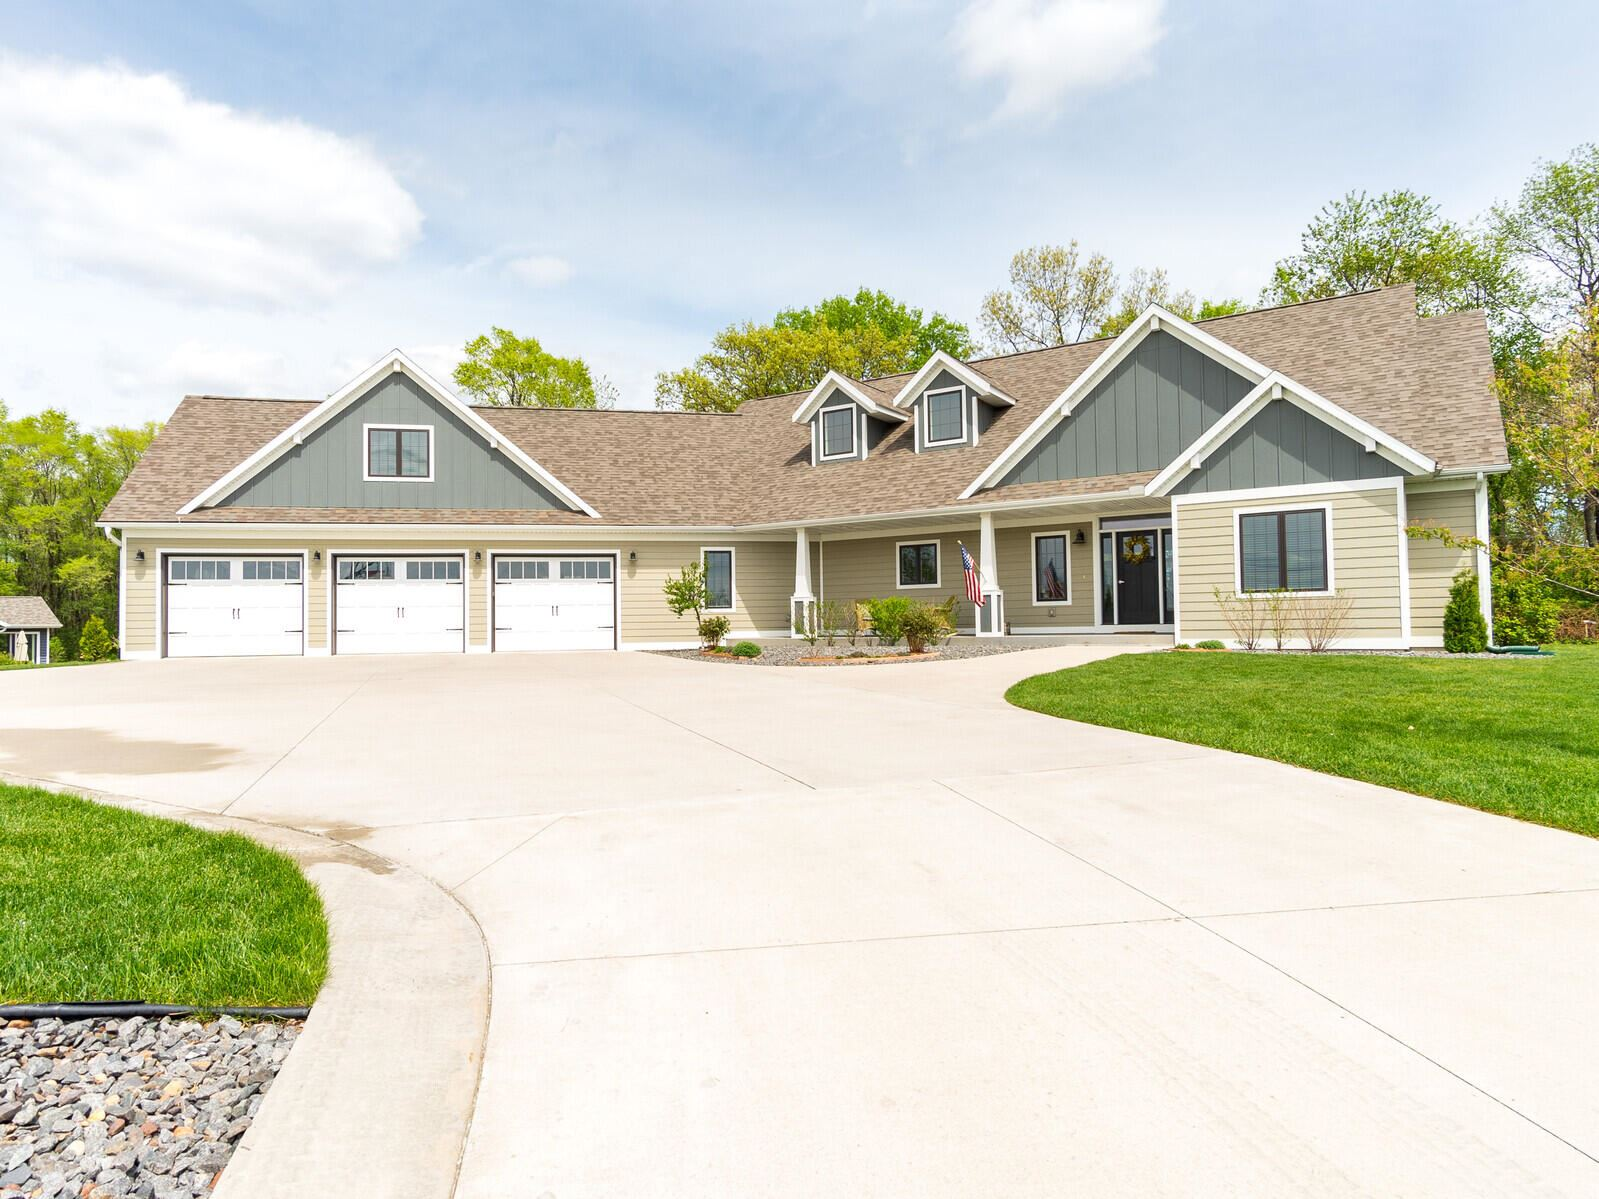 N7042 Pedretti ST, Holland, WI 54636 - MLS#: 1739071